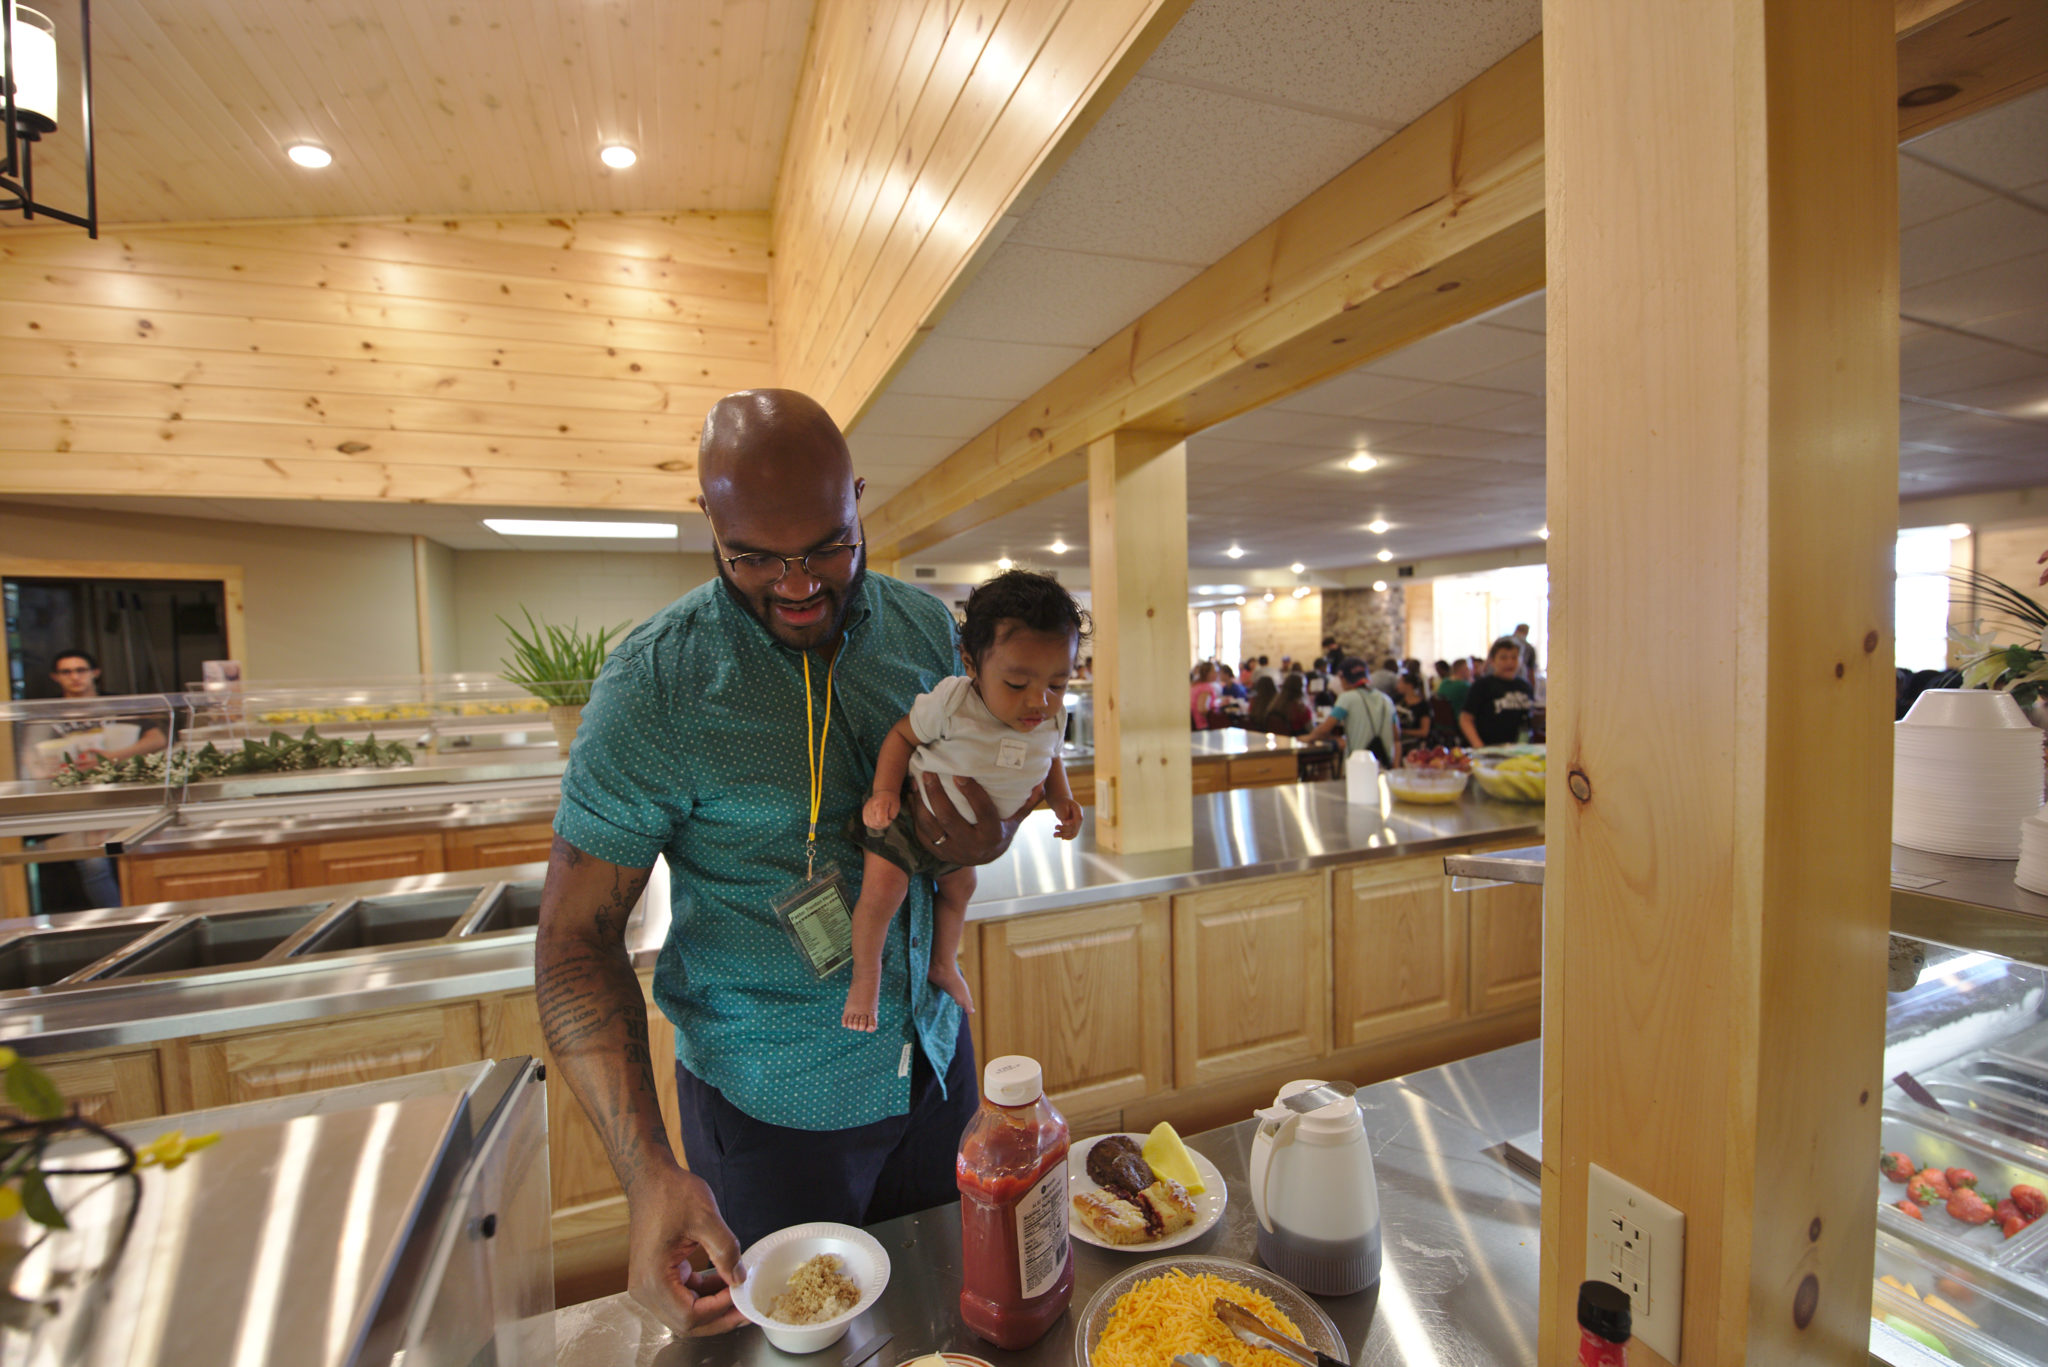 Man with child eating in dining hall